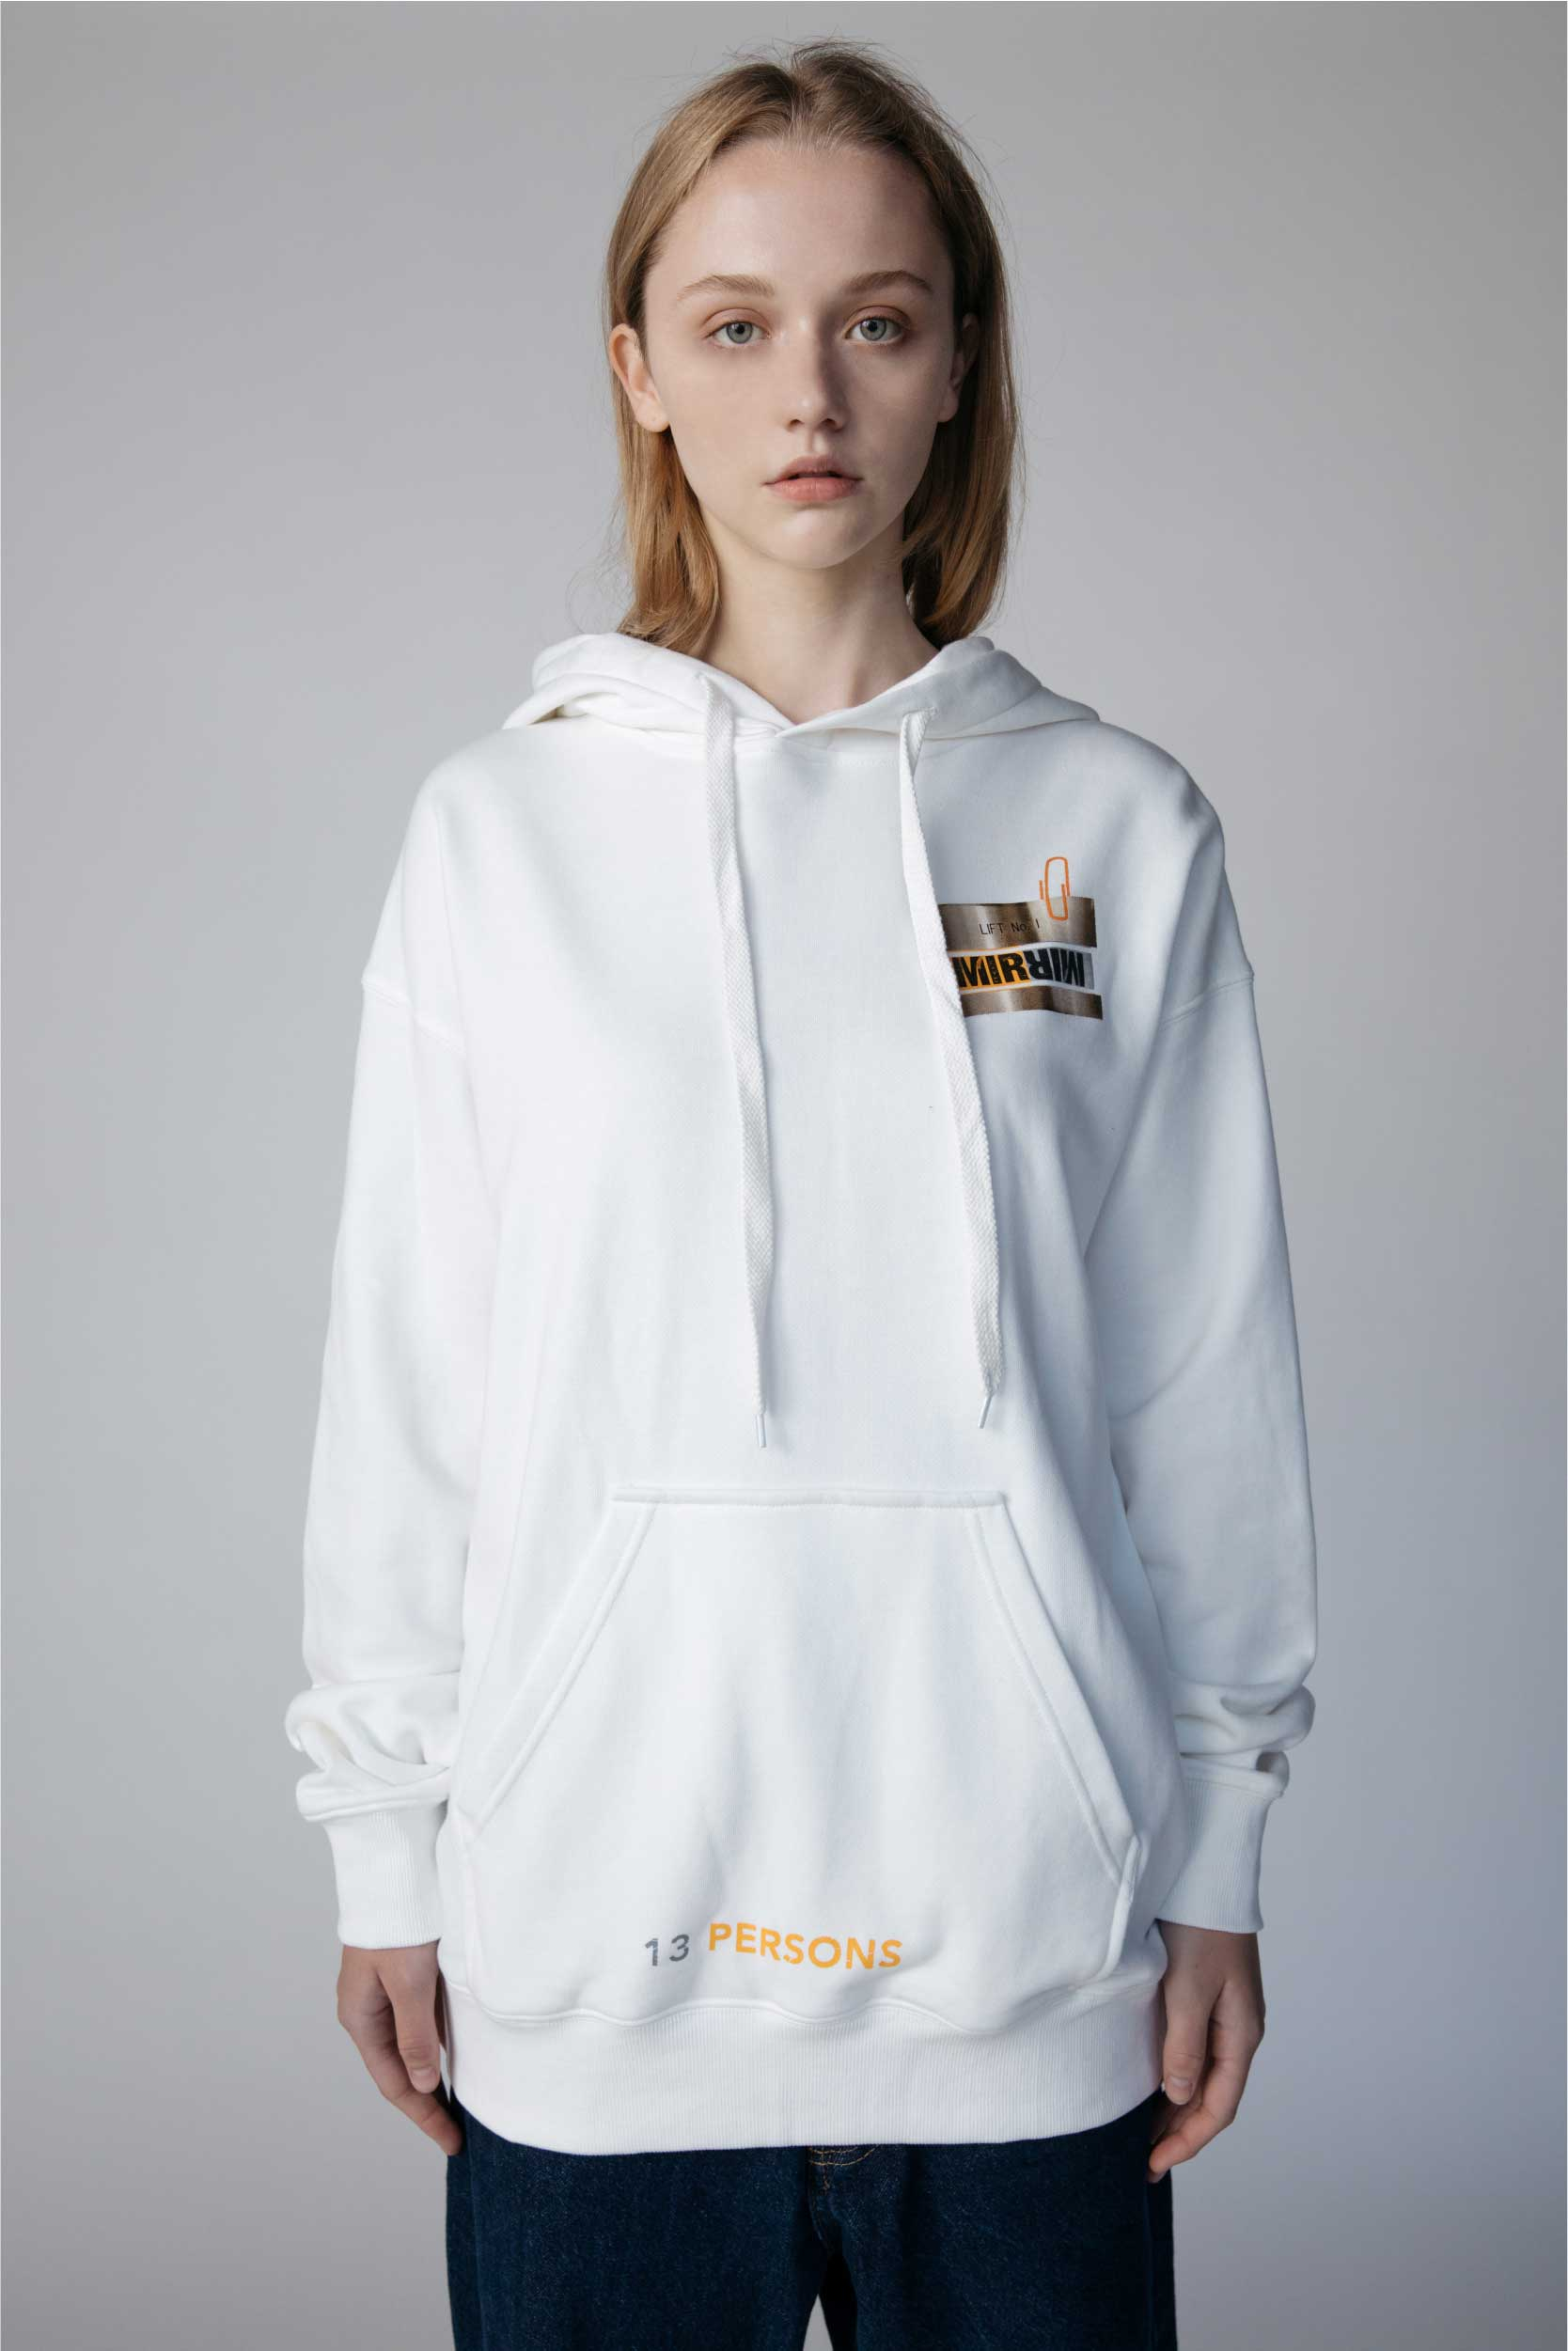 13 Persons Hoodie-White